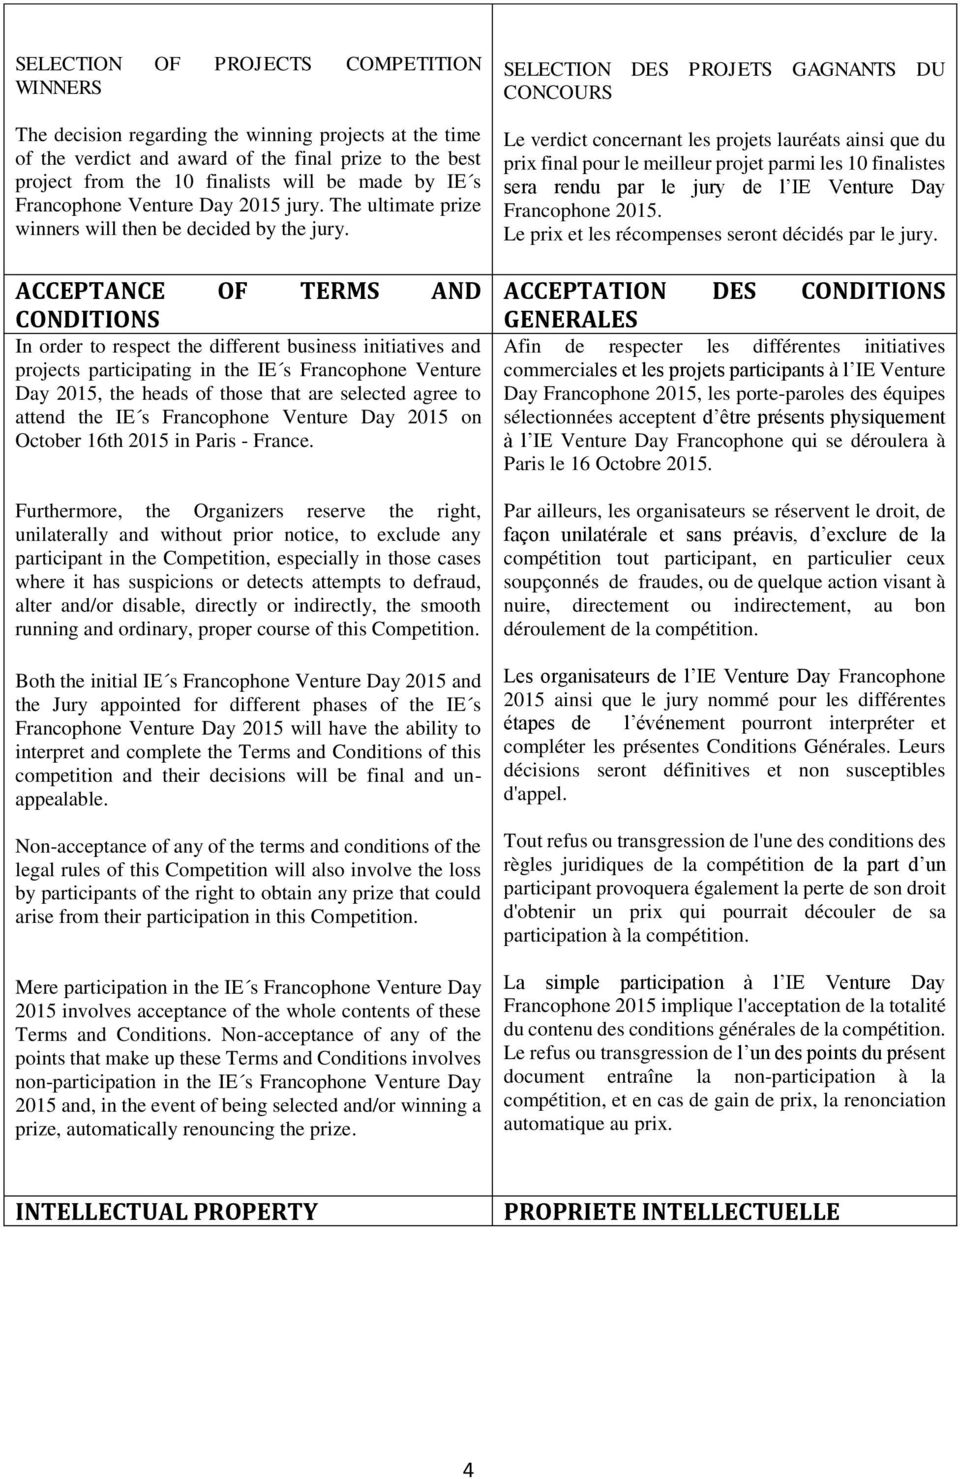 ACCEPTANCE OF TERMS AND CONDITIONS In order to respect the different business initiatives and projects participating in the IE s Francophone Venture Day 2015, the heads of those that are selected